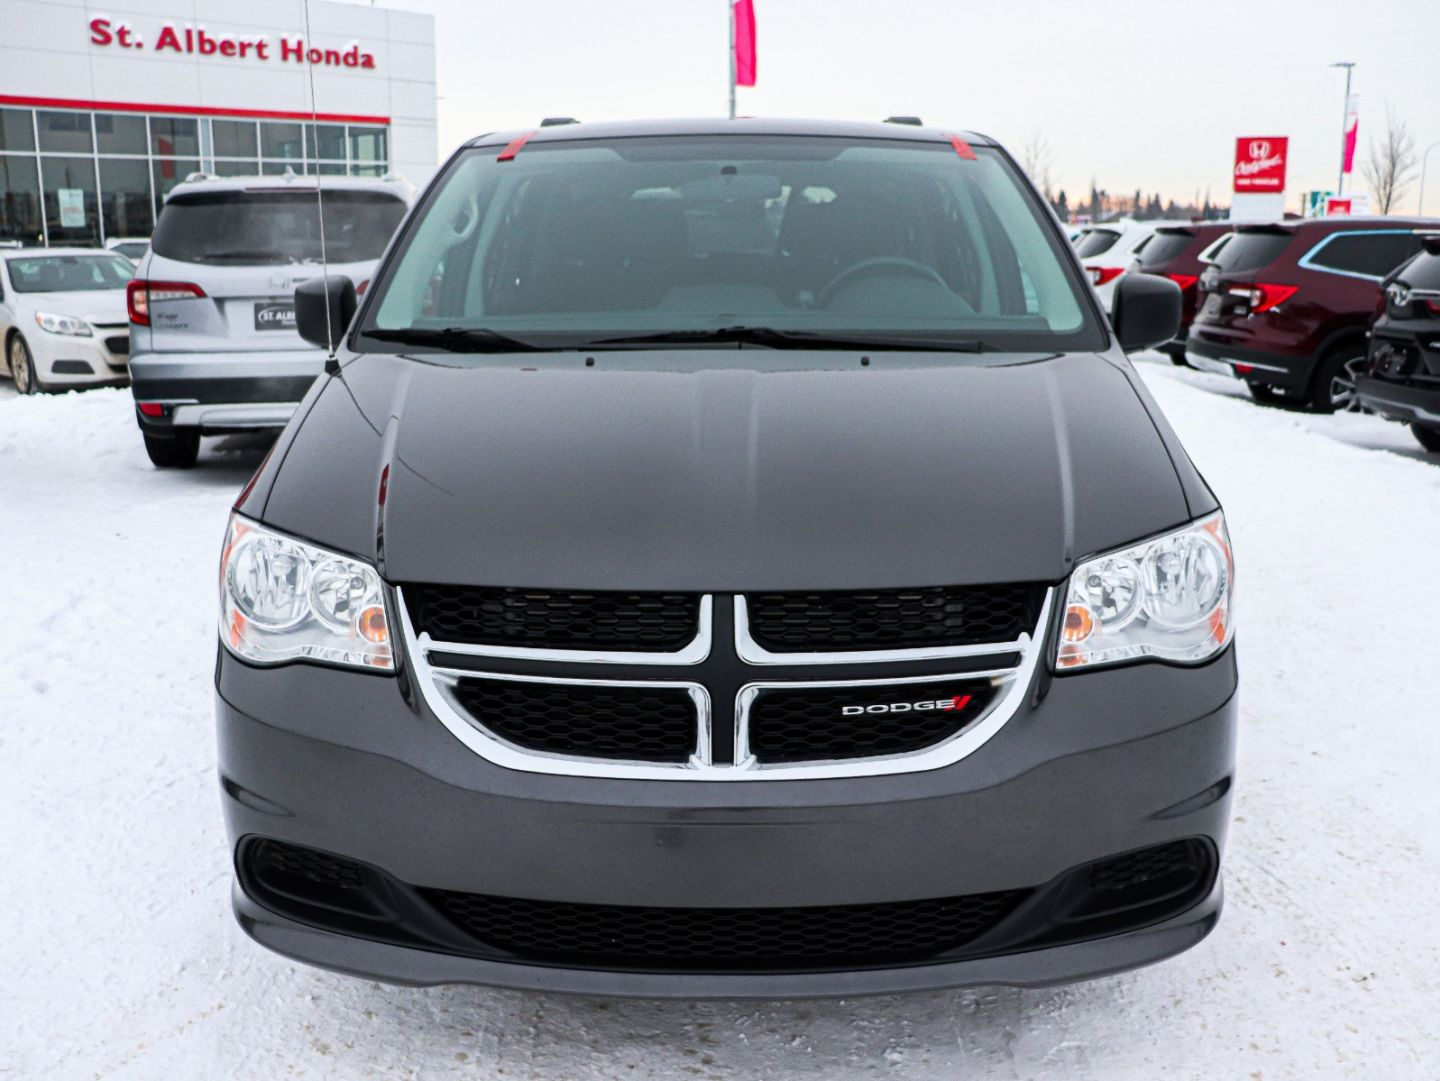 2017 Dodge Grand Caravan SXT for sale in St. Albert, Alberta